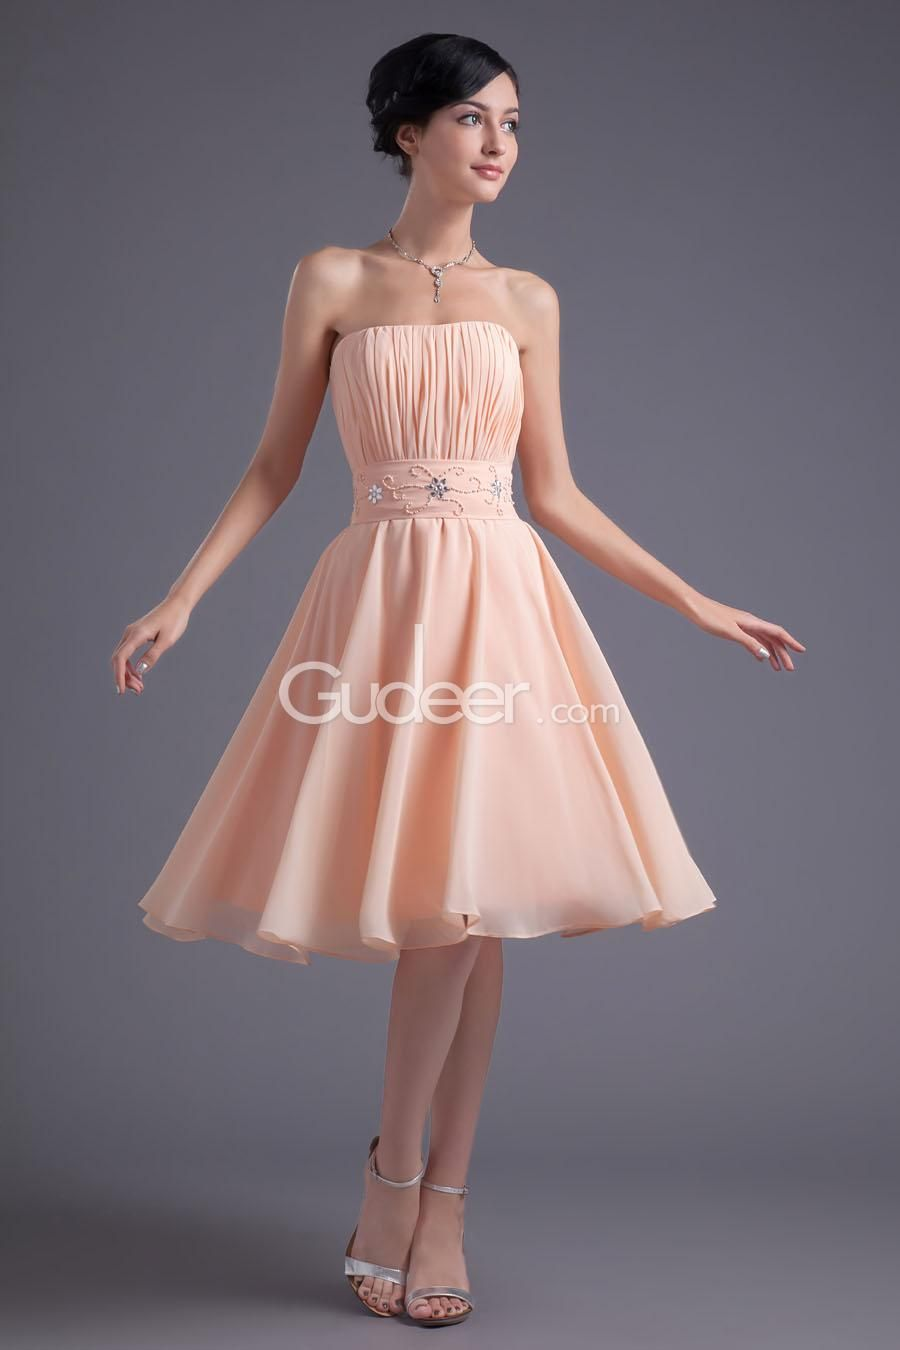 Strapless Pleated Peach Chiffon Knee Length A-line Cocktail Dress ...